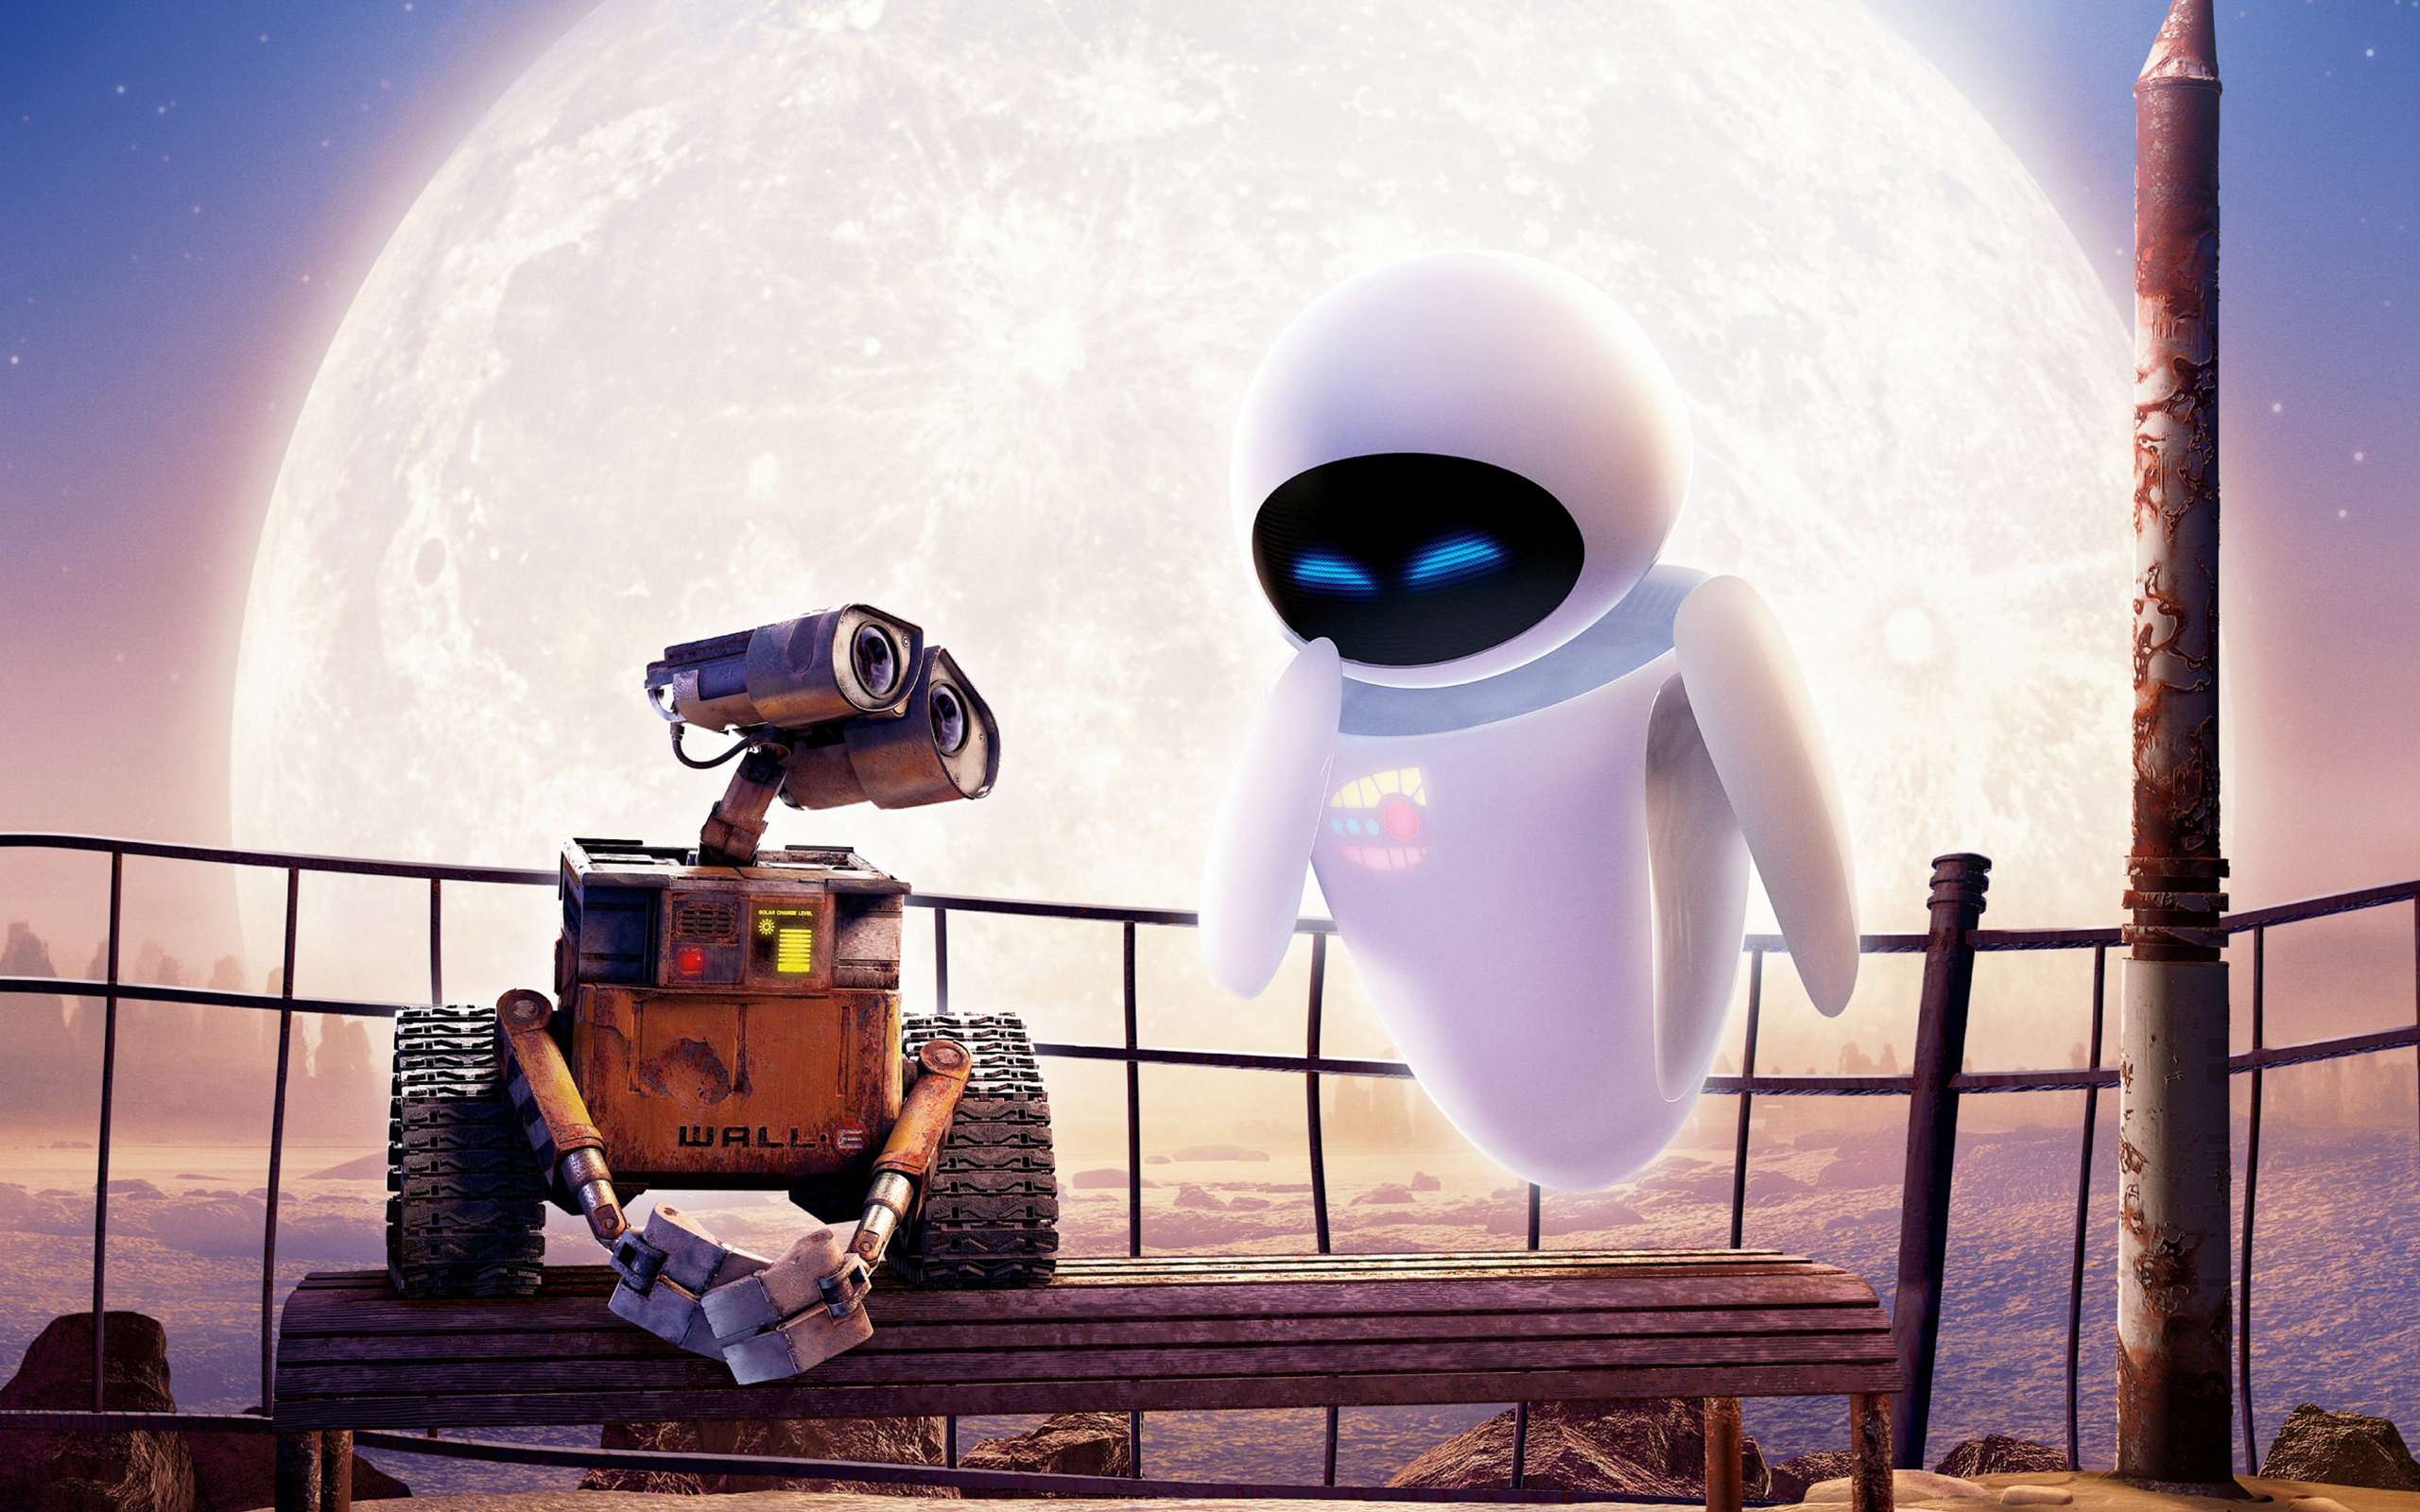 Wall E Hd Movies 4k Wallpapers Images Backgrounds Photos And